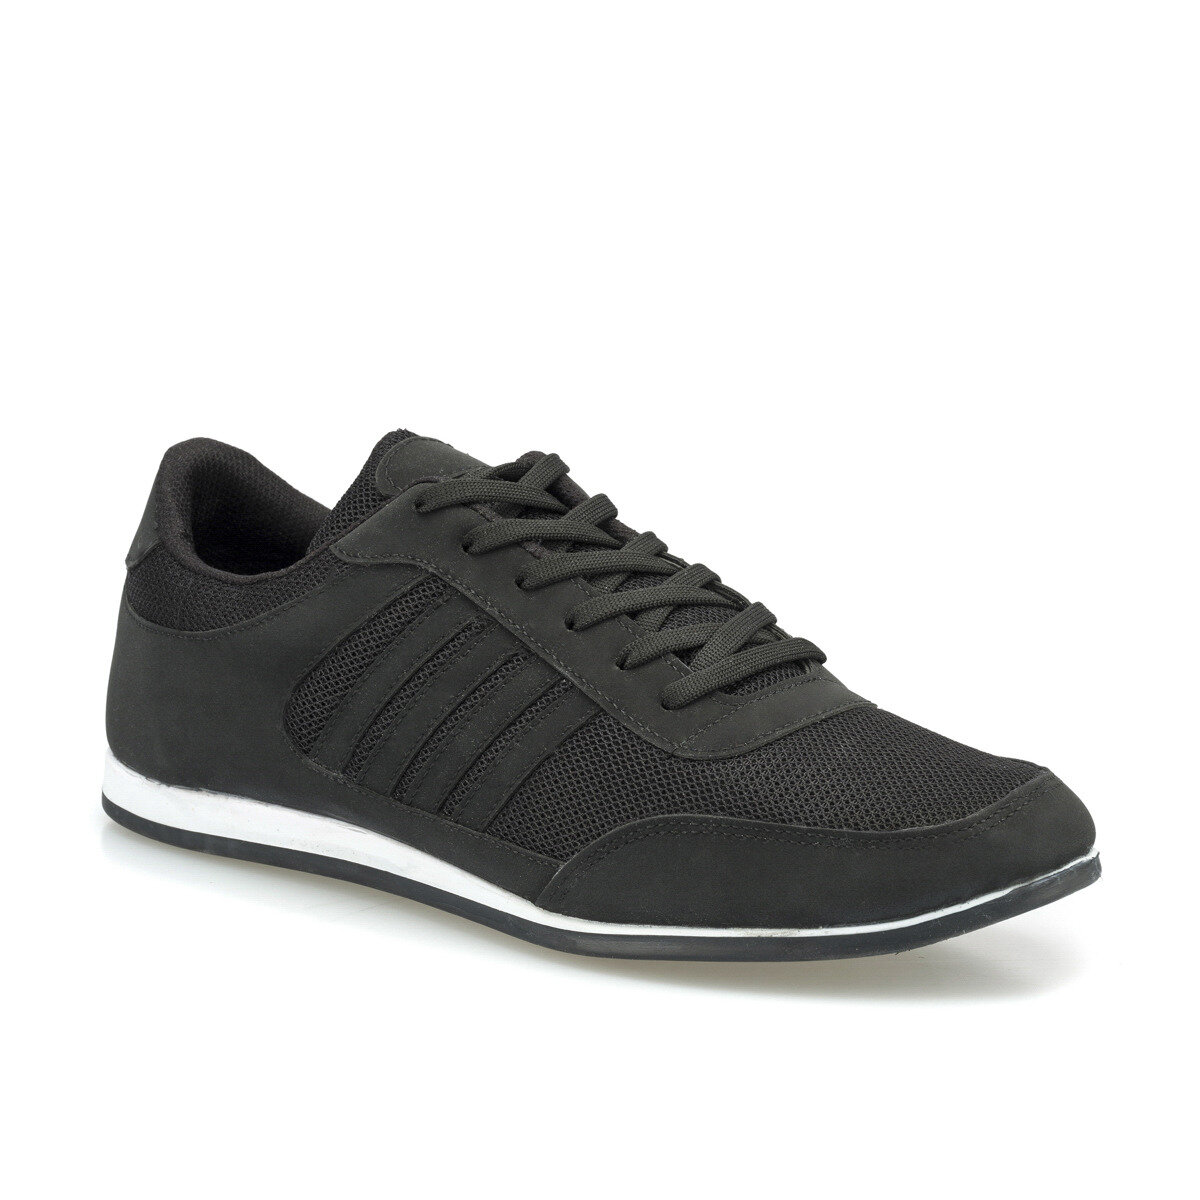 FLO 356514.M Black Men 'S Sneaker Shoes Polaris